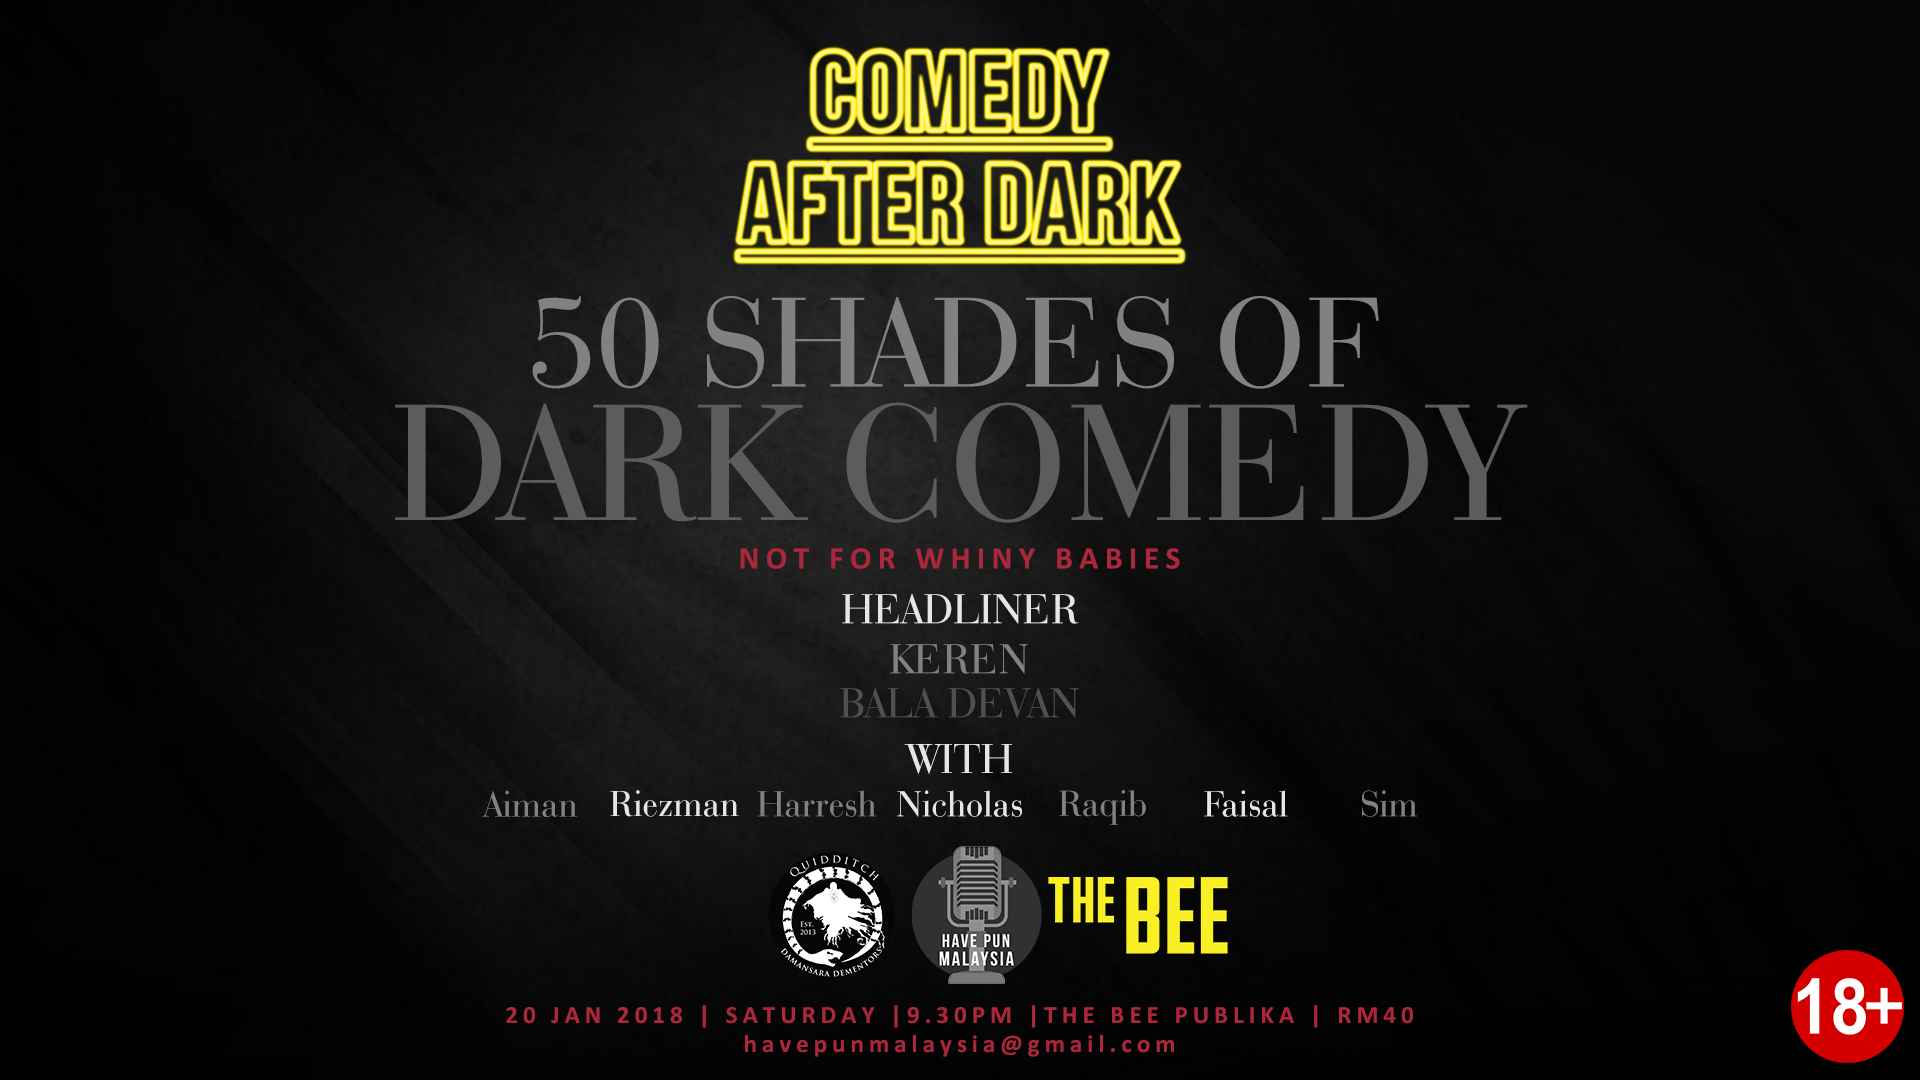 JANUARY 20 : Comedy After Dark at Publika